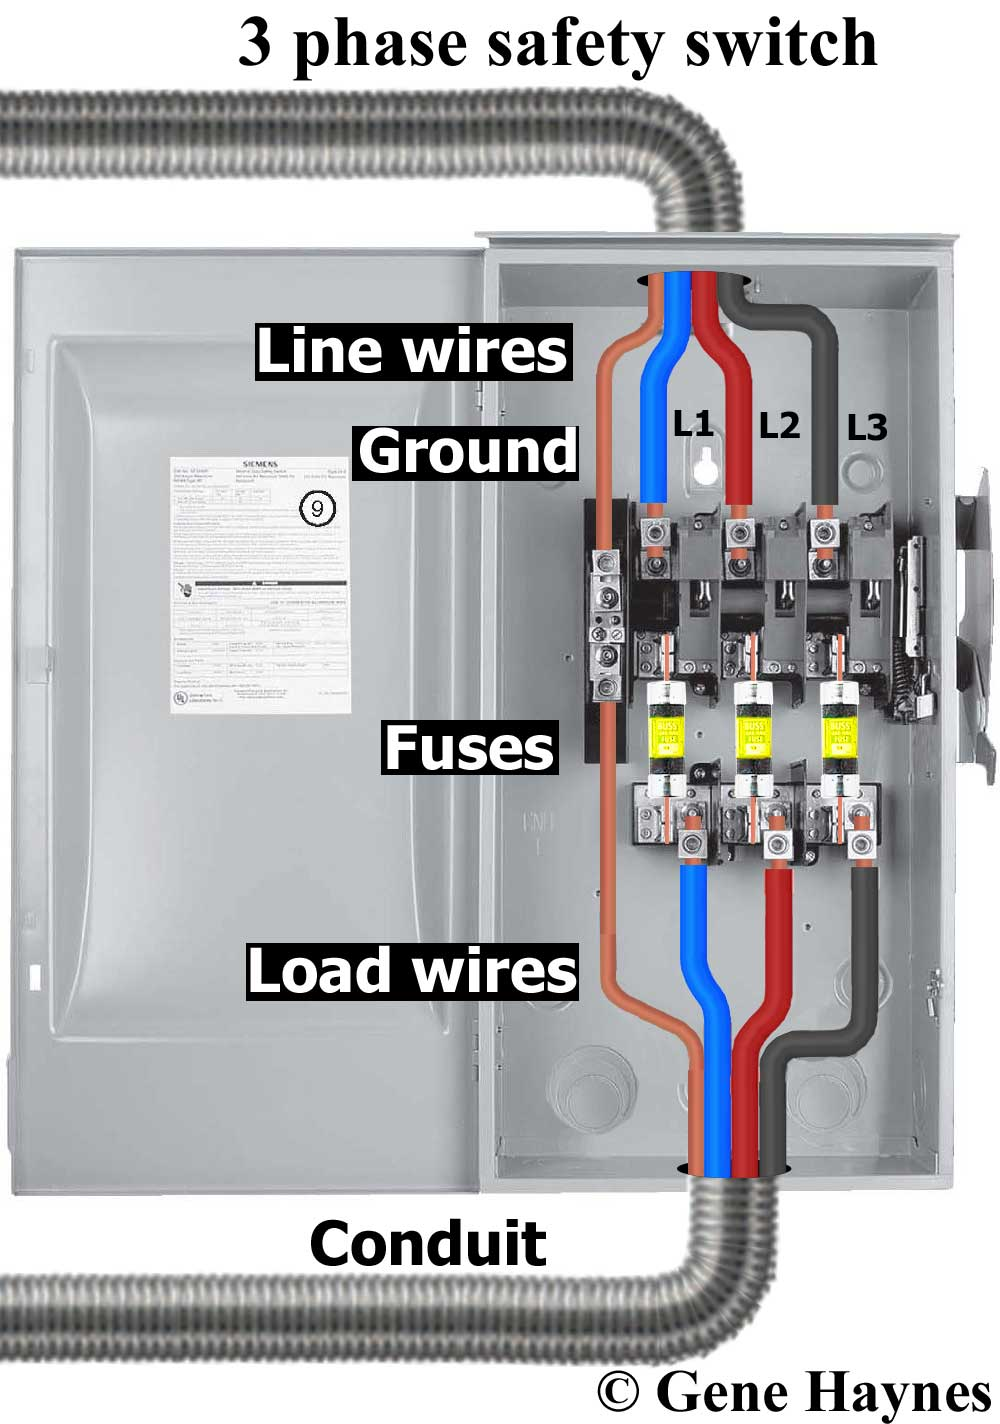 hight resolution of how to wire safety switchlarger image 3 pole safety switch example shows fusable this is